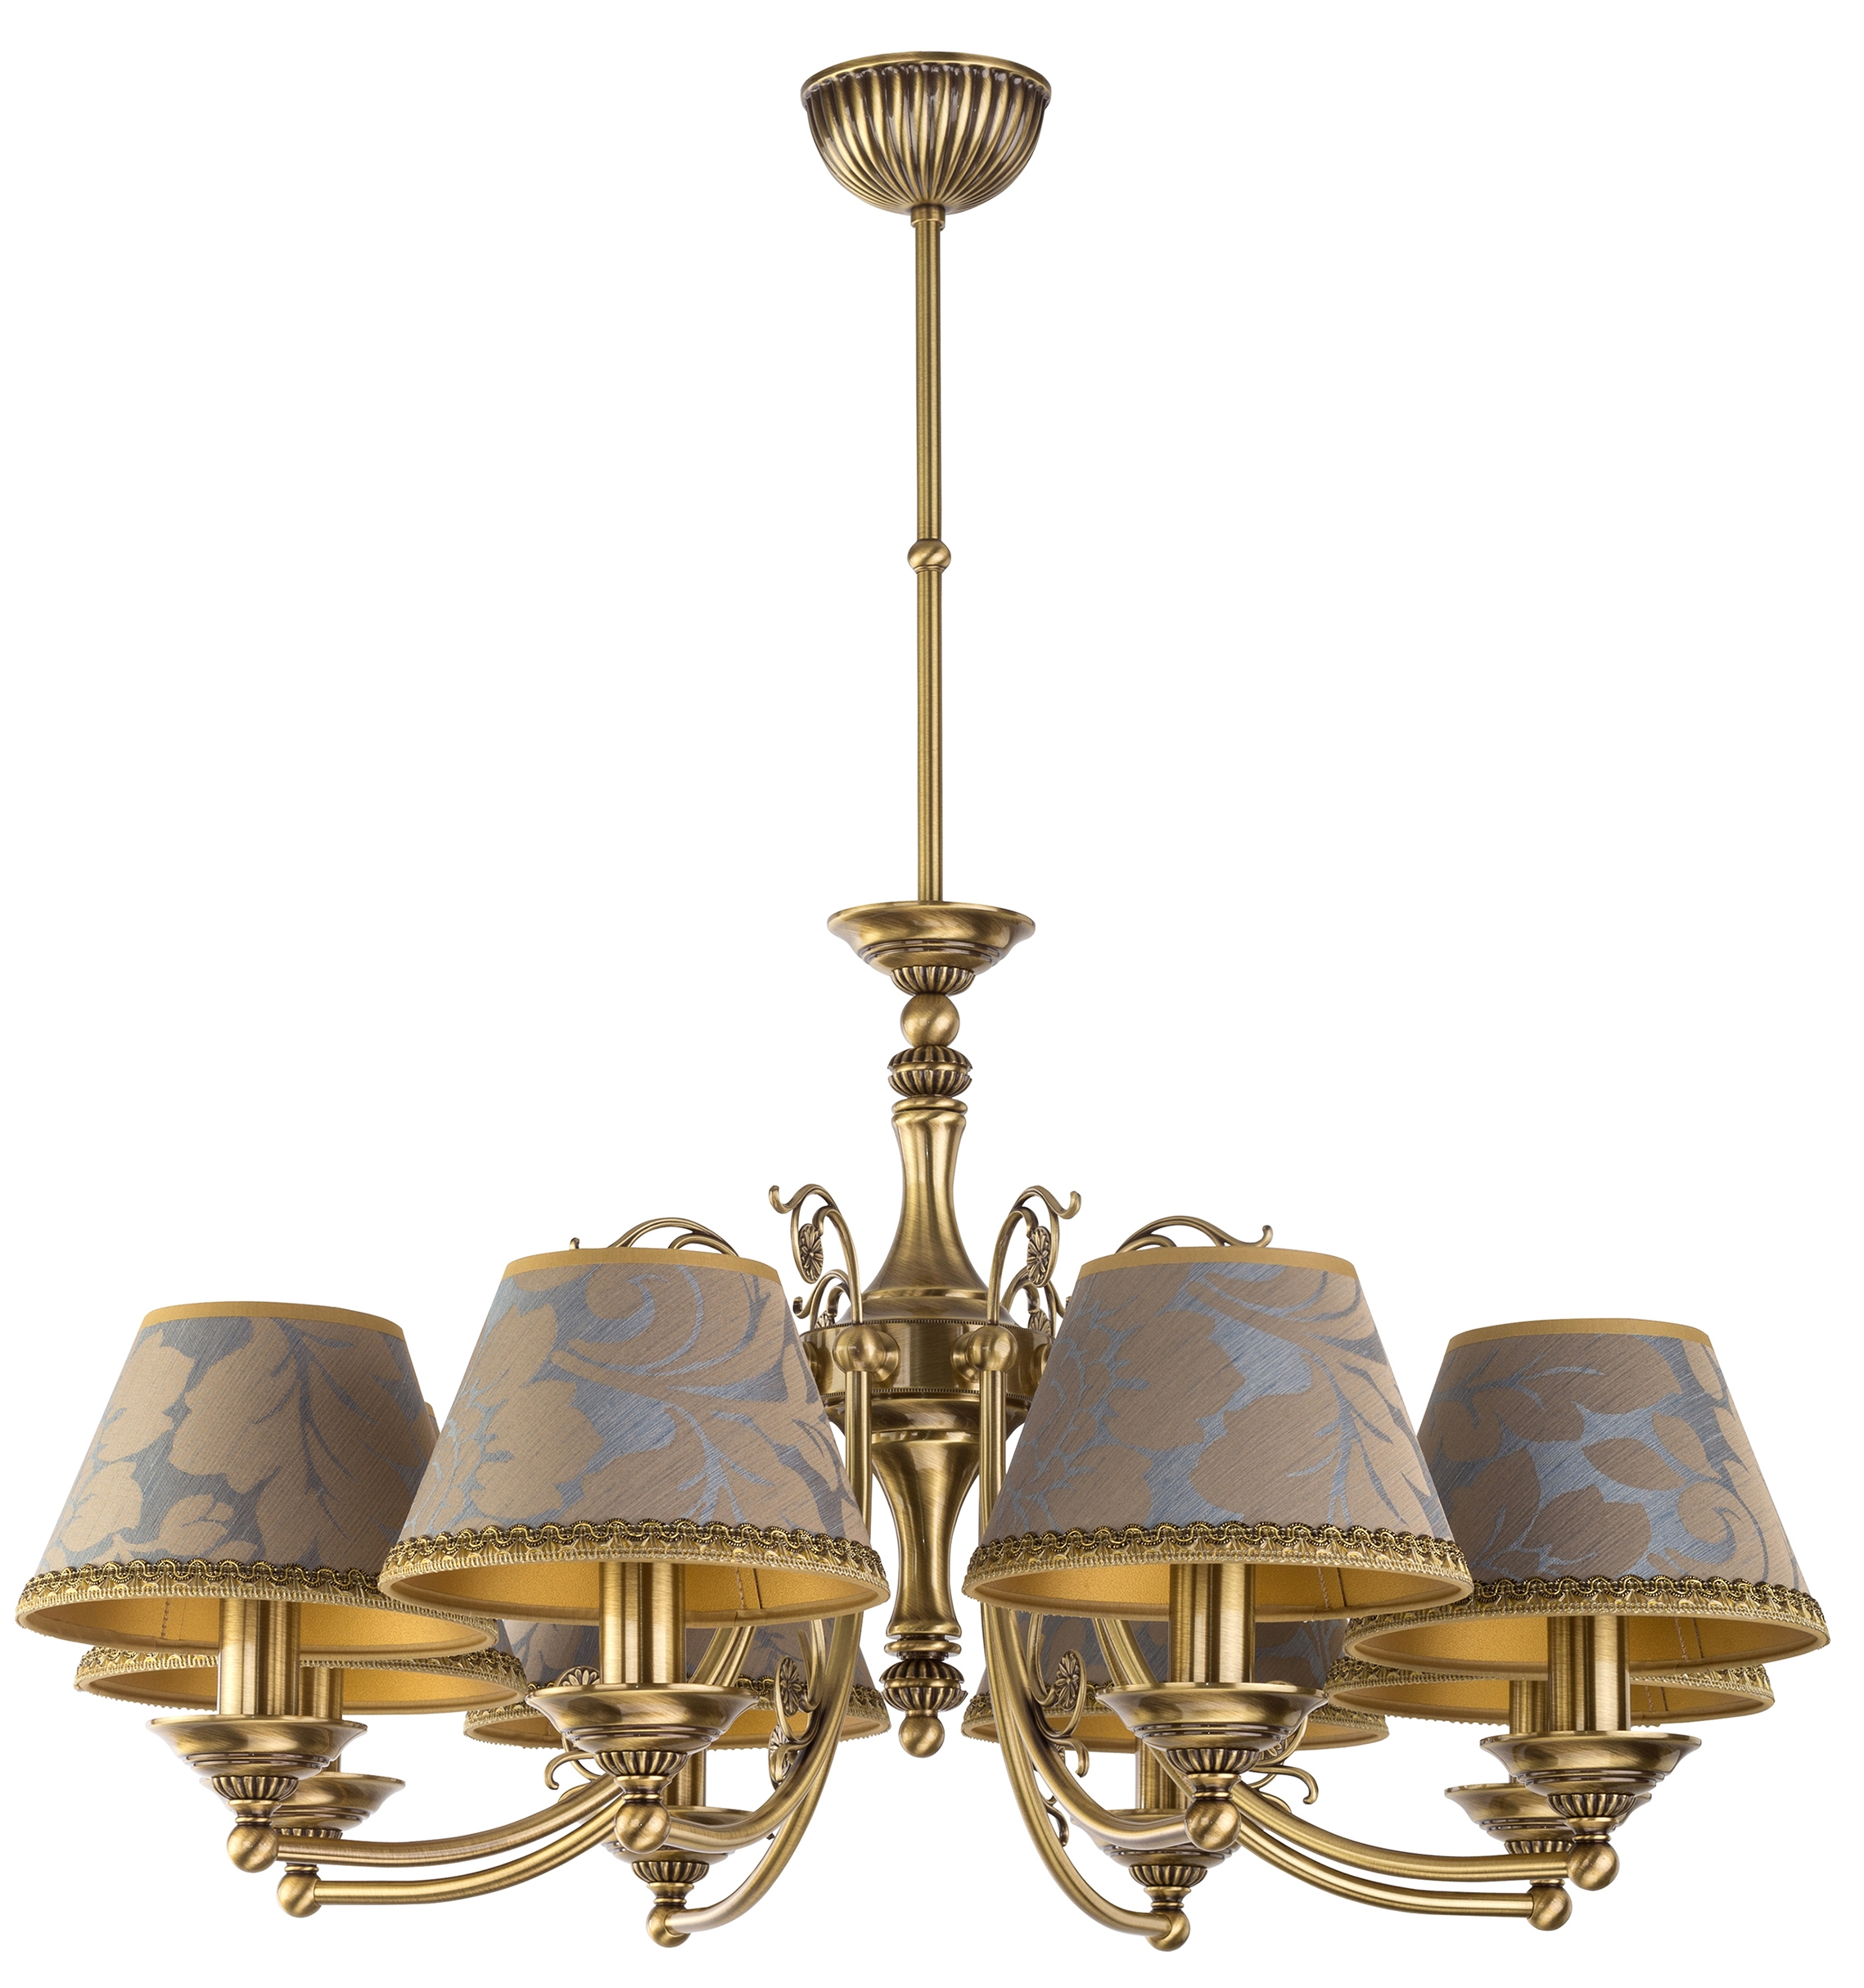 Casamia 8 Arm Brass Chandelier With Fabric Shades Luxury Chandelier